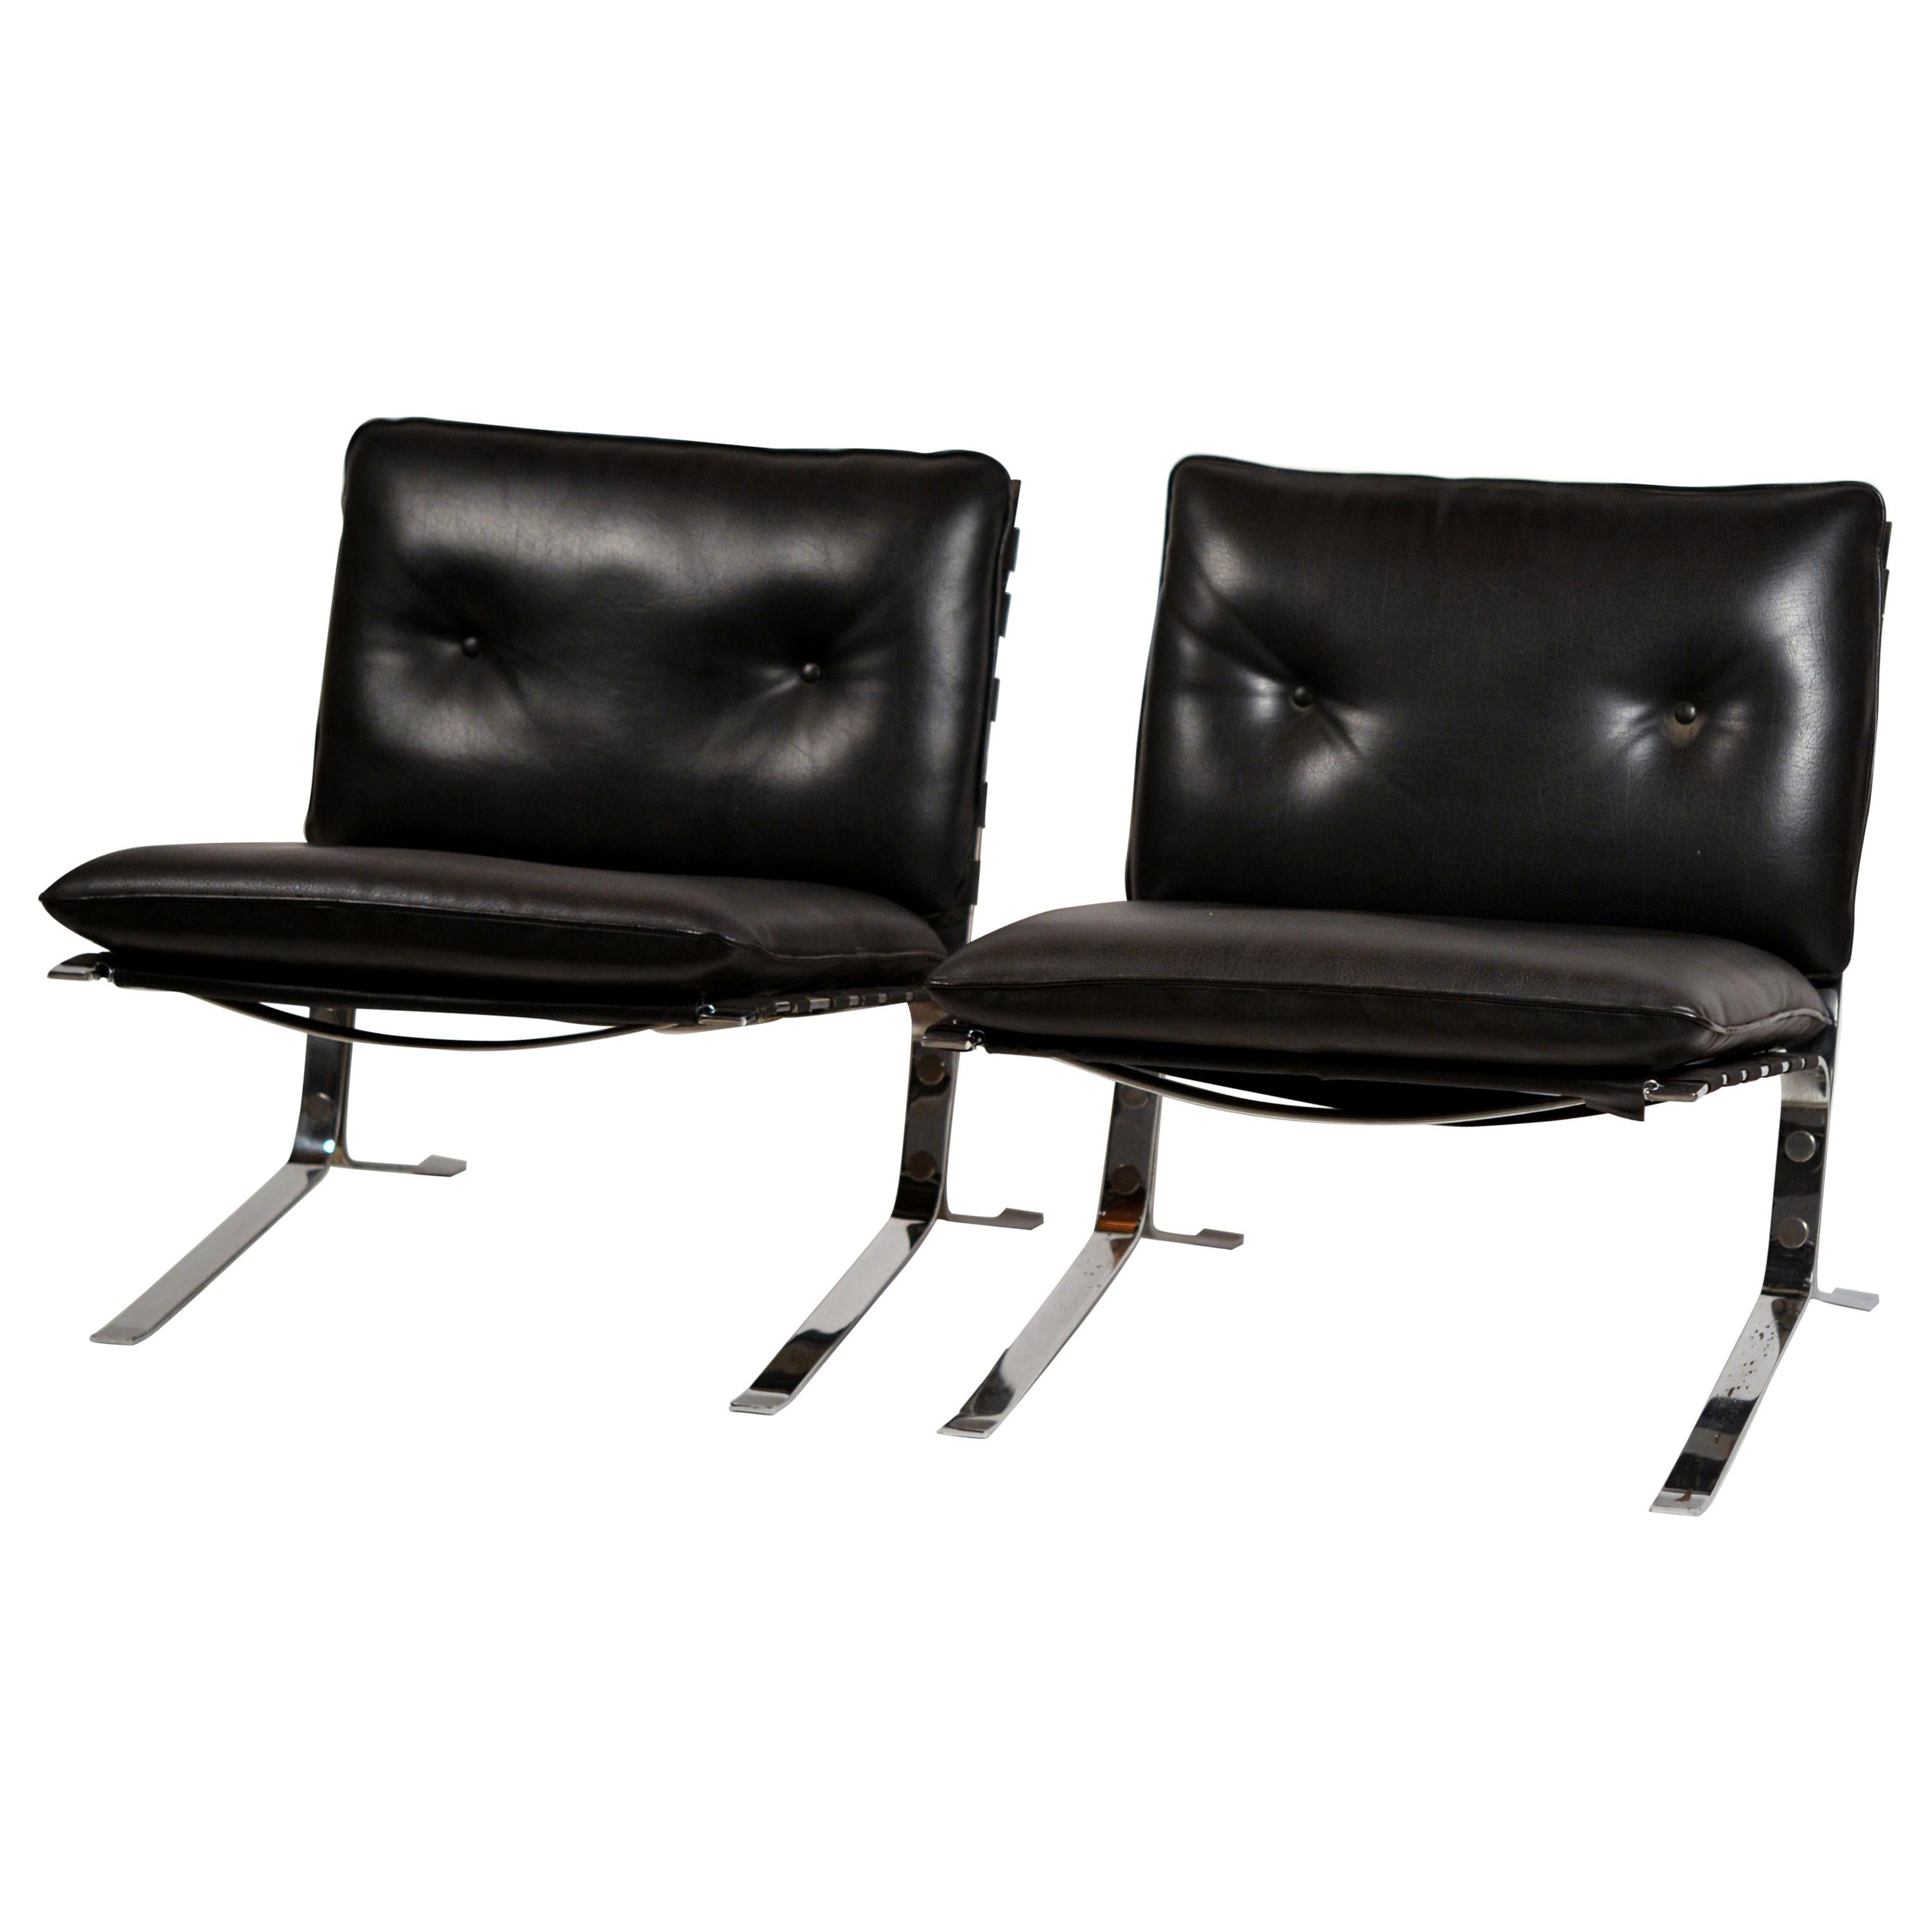 Rare Pair of Original 'Joker' Lounge Chairs by Olivier Mourgue for Airborne